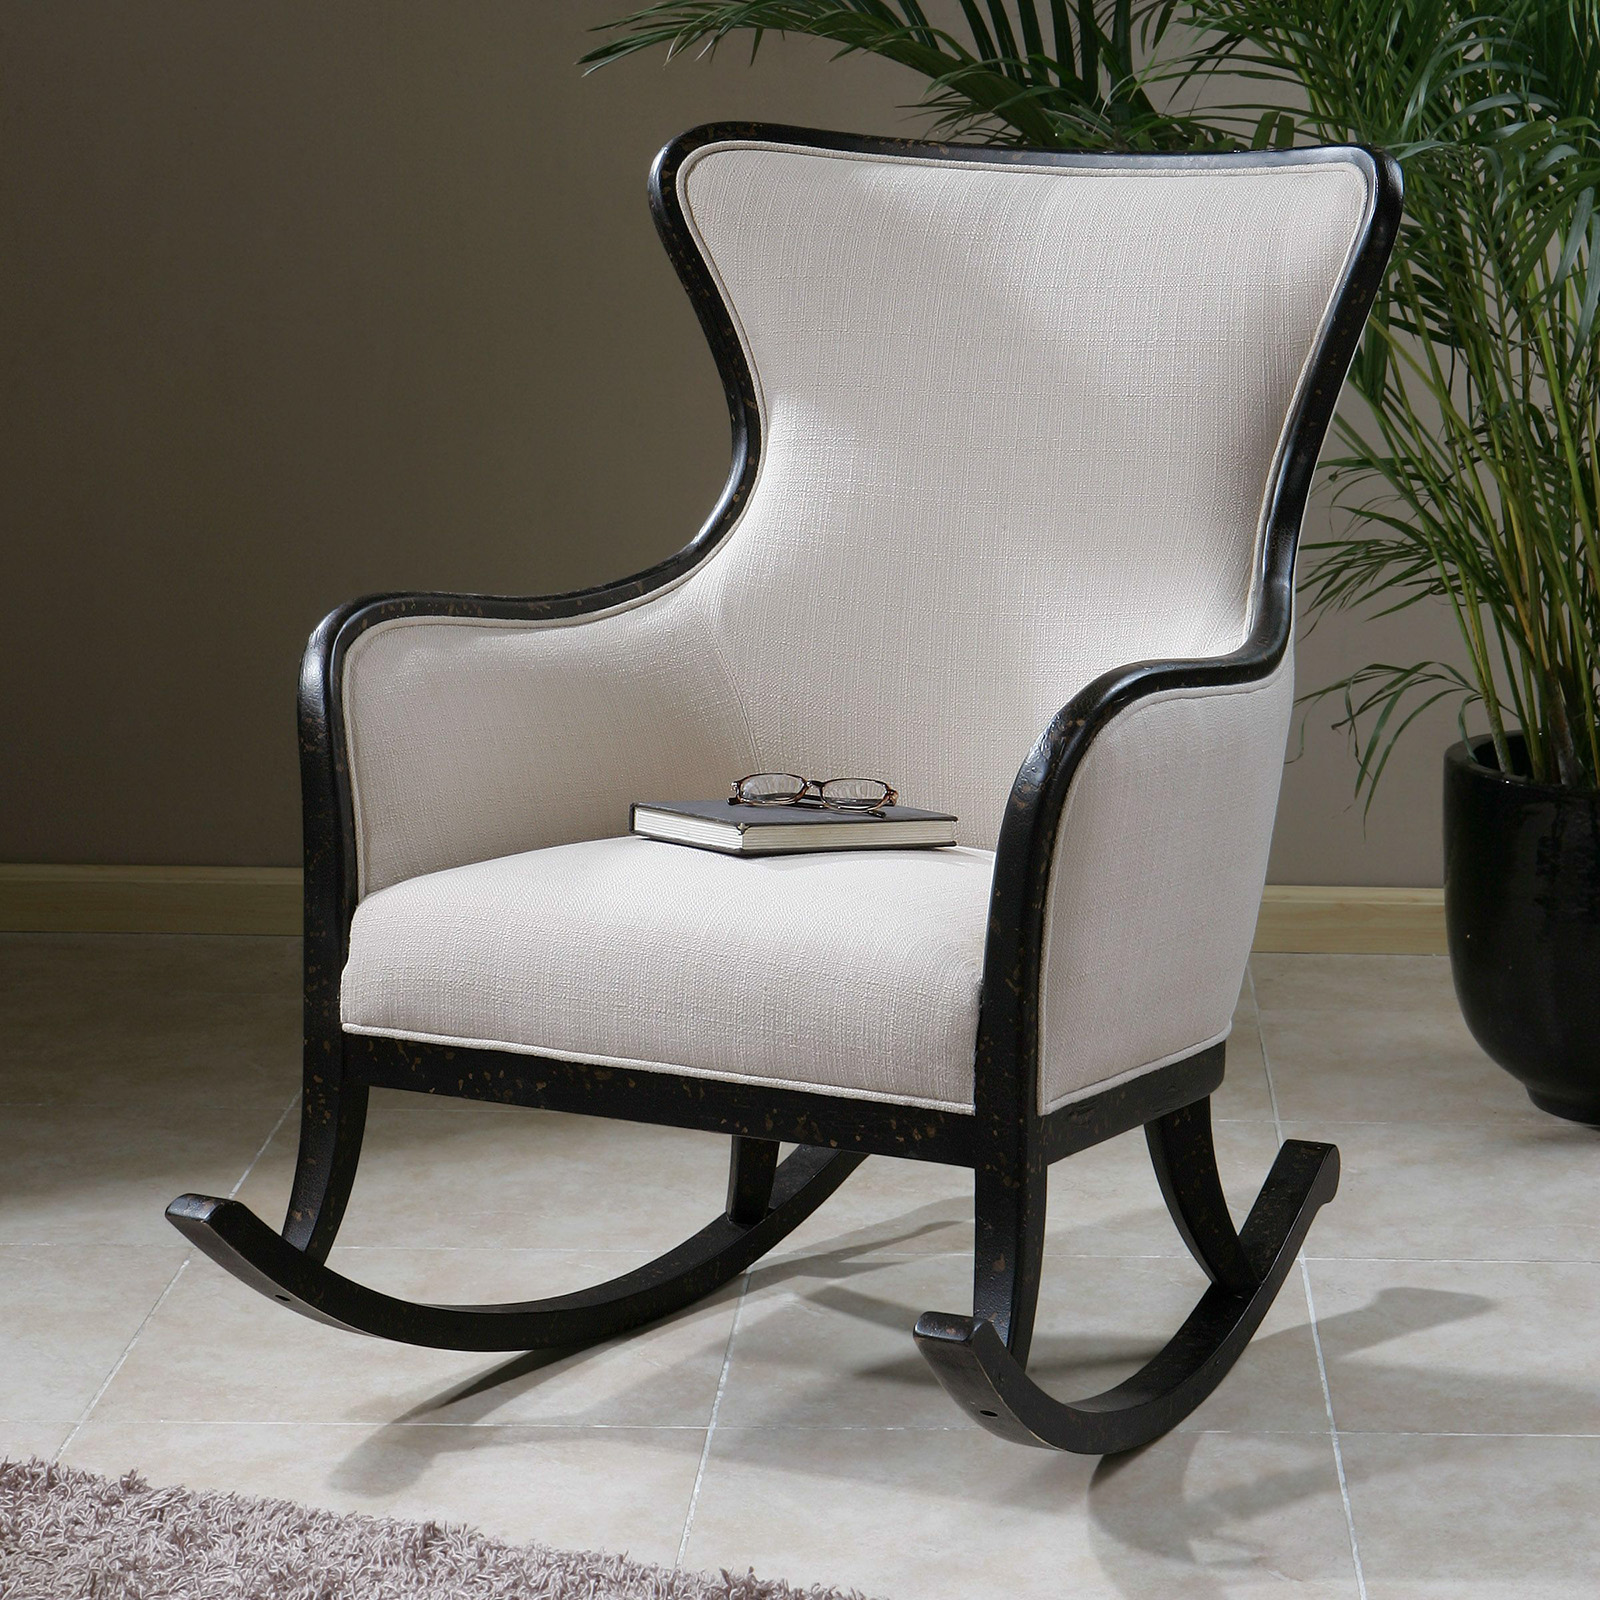 Modern Upholstered Rocking Chair Uttermost Sandy Rocking Chair - White - Indoor Rocking